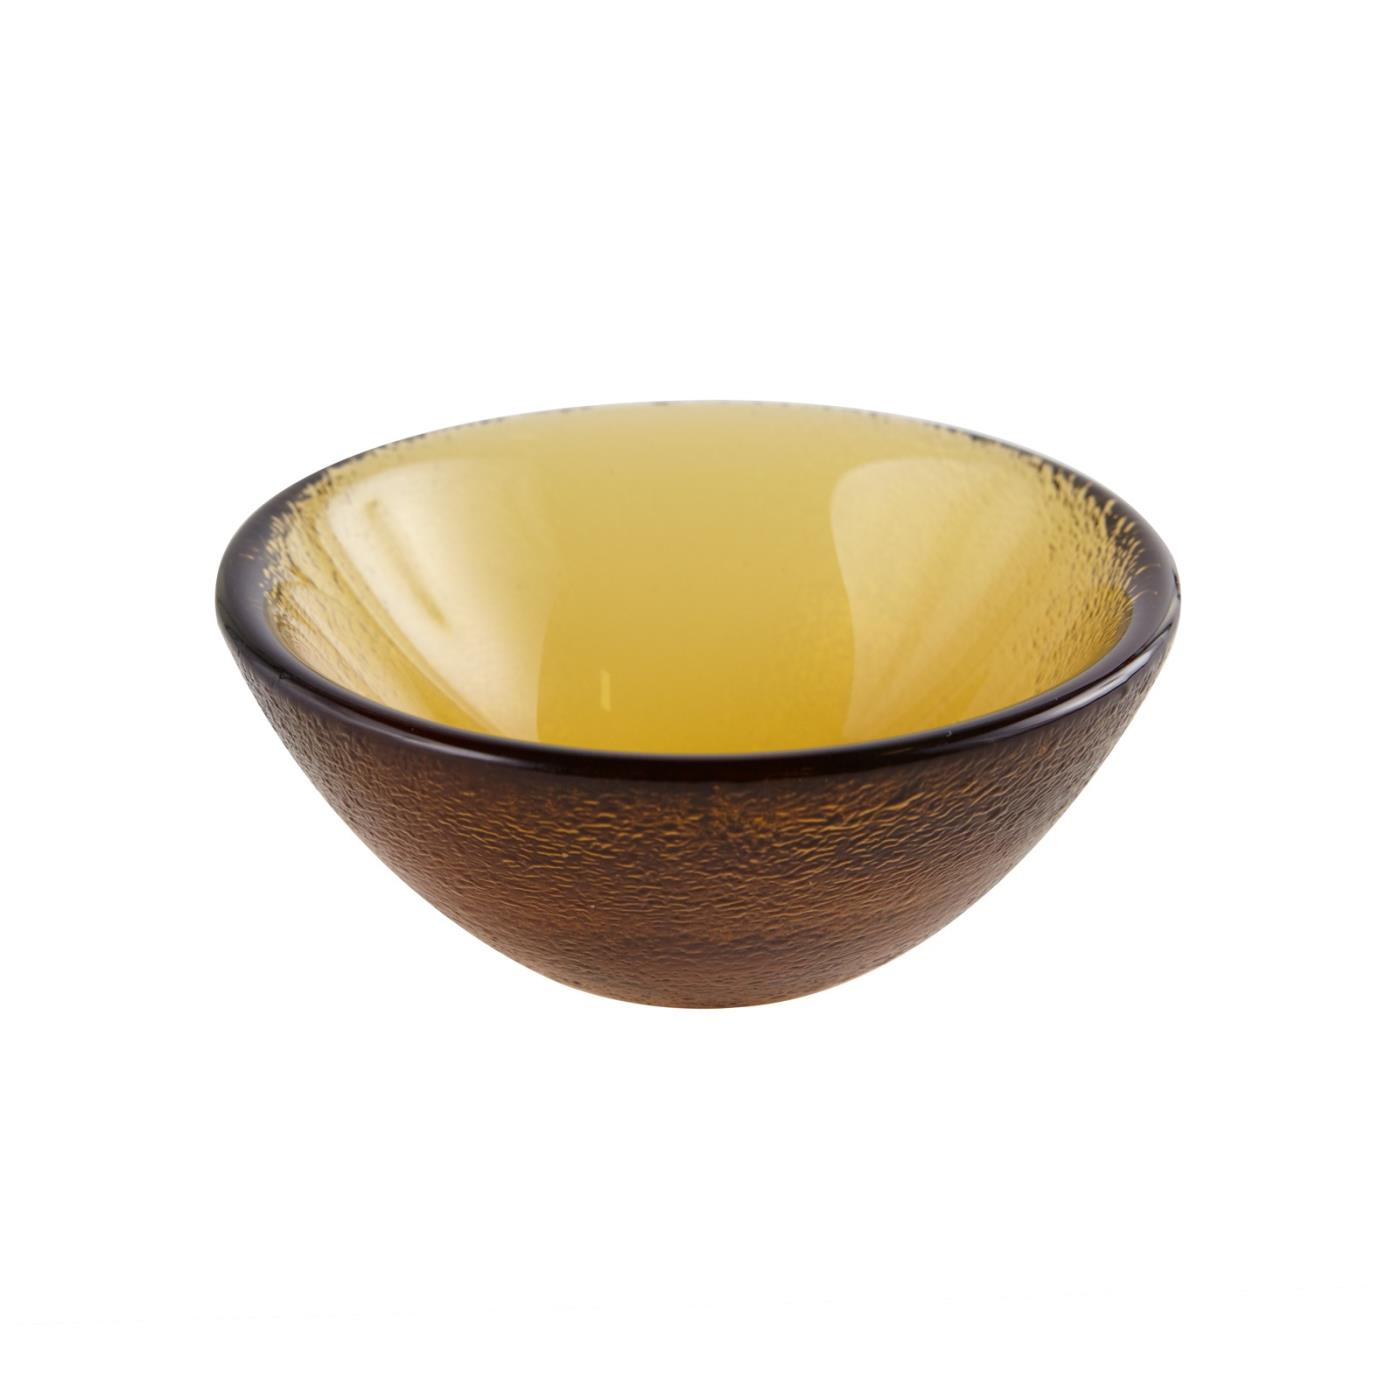 "Glass Dipping Bowl 3.25"" - Amber"